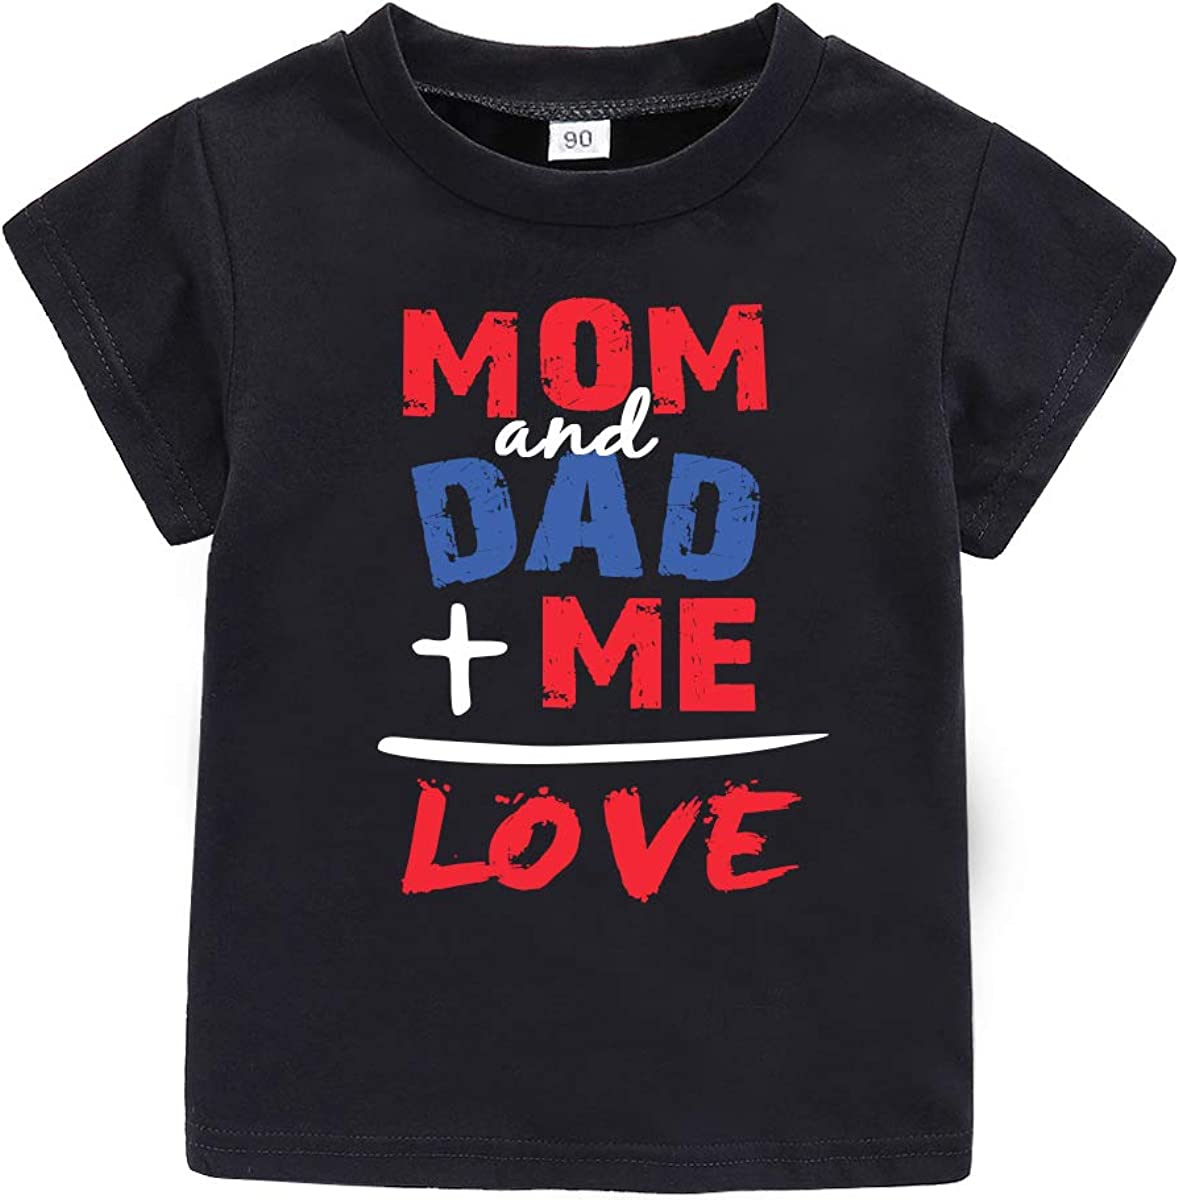 Toddler Baby Valentine's Day Outfit Mom and Dad +Me is Love Short Sleeve Kids T-Shirt